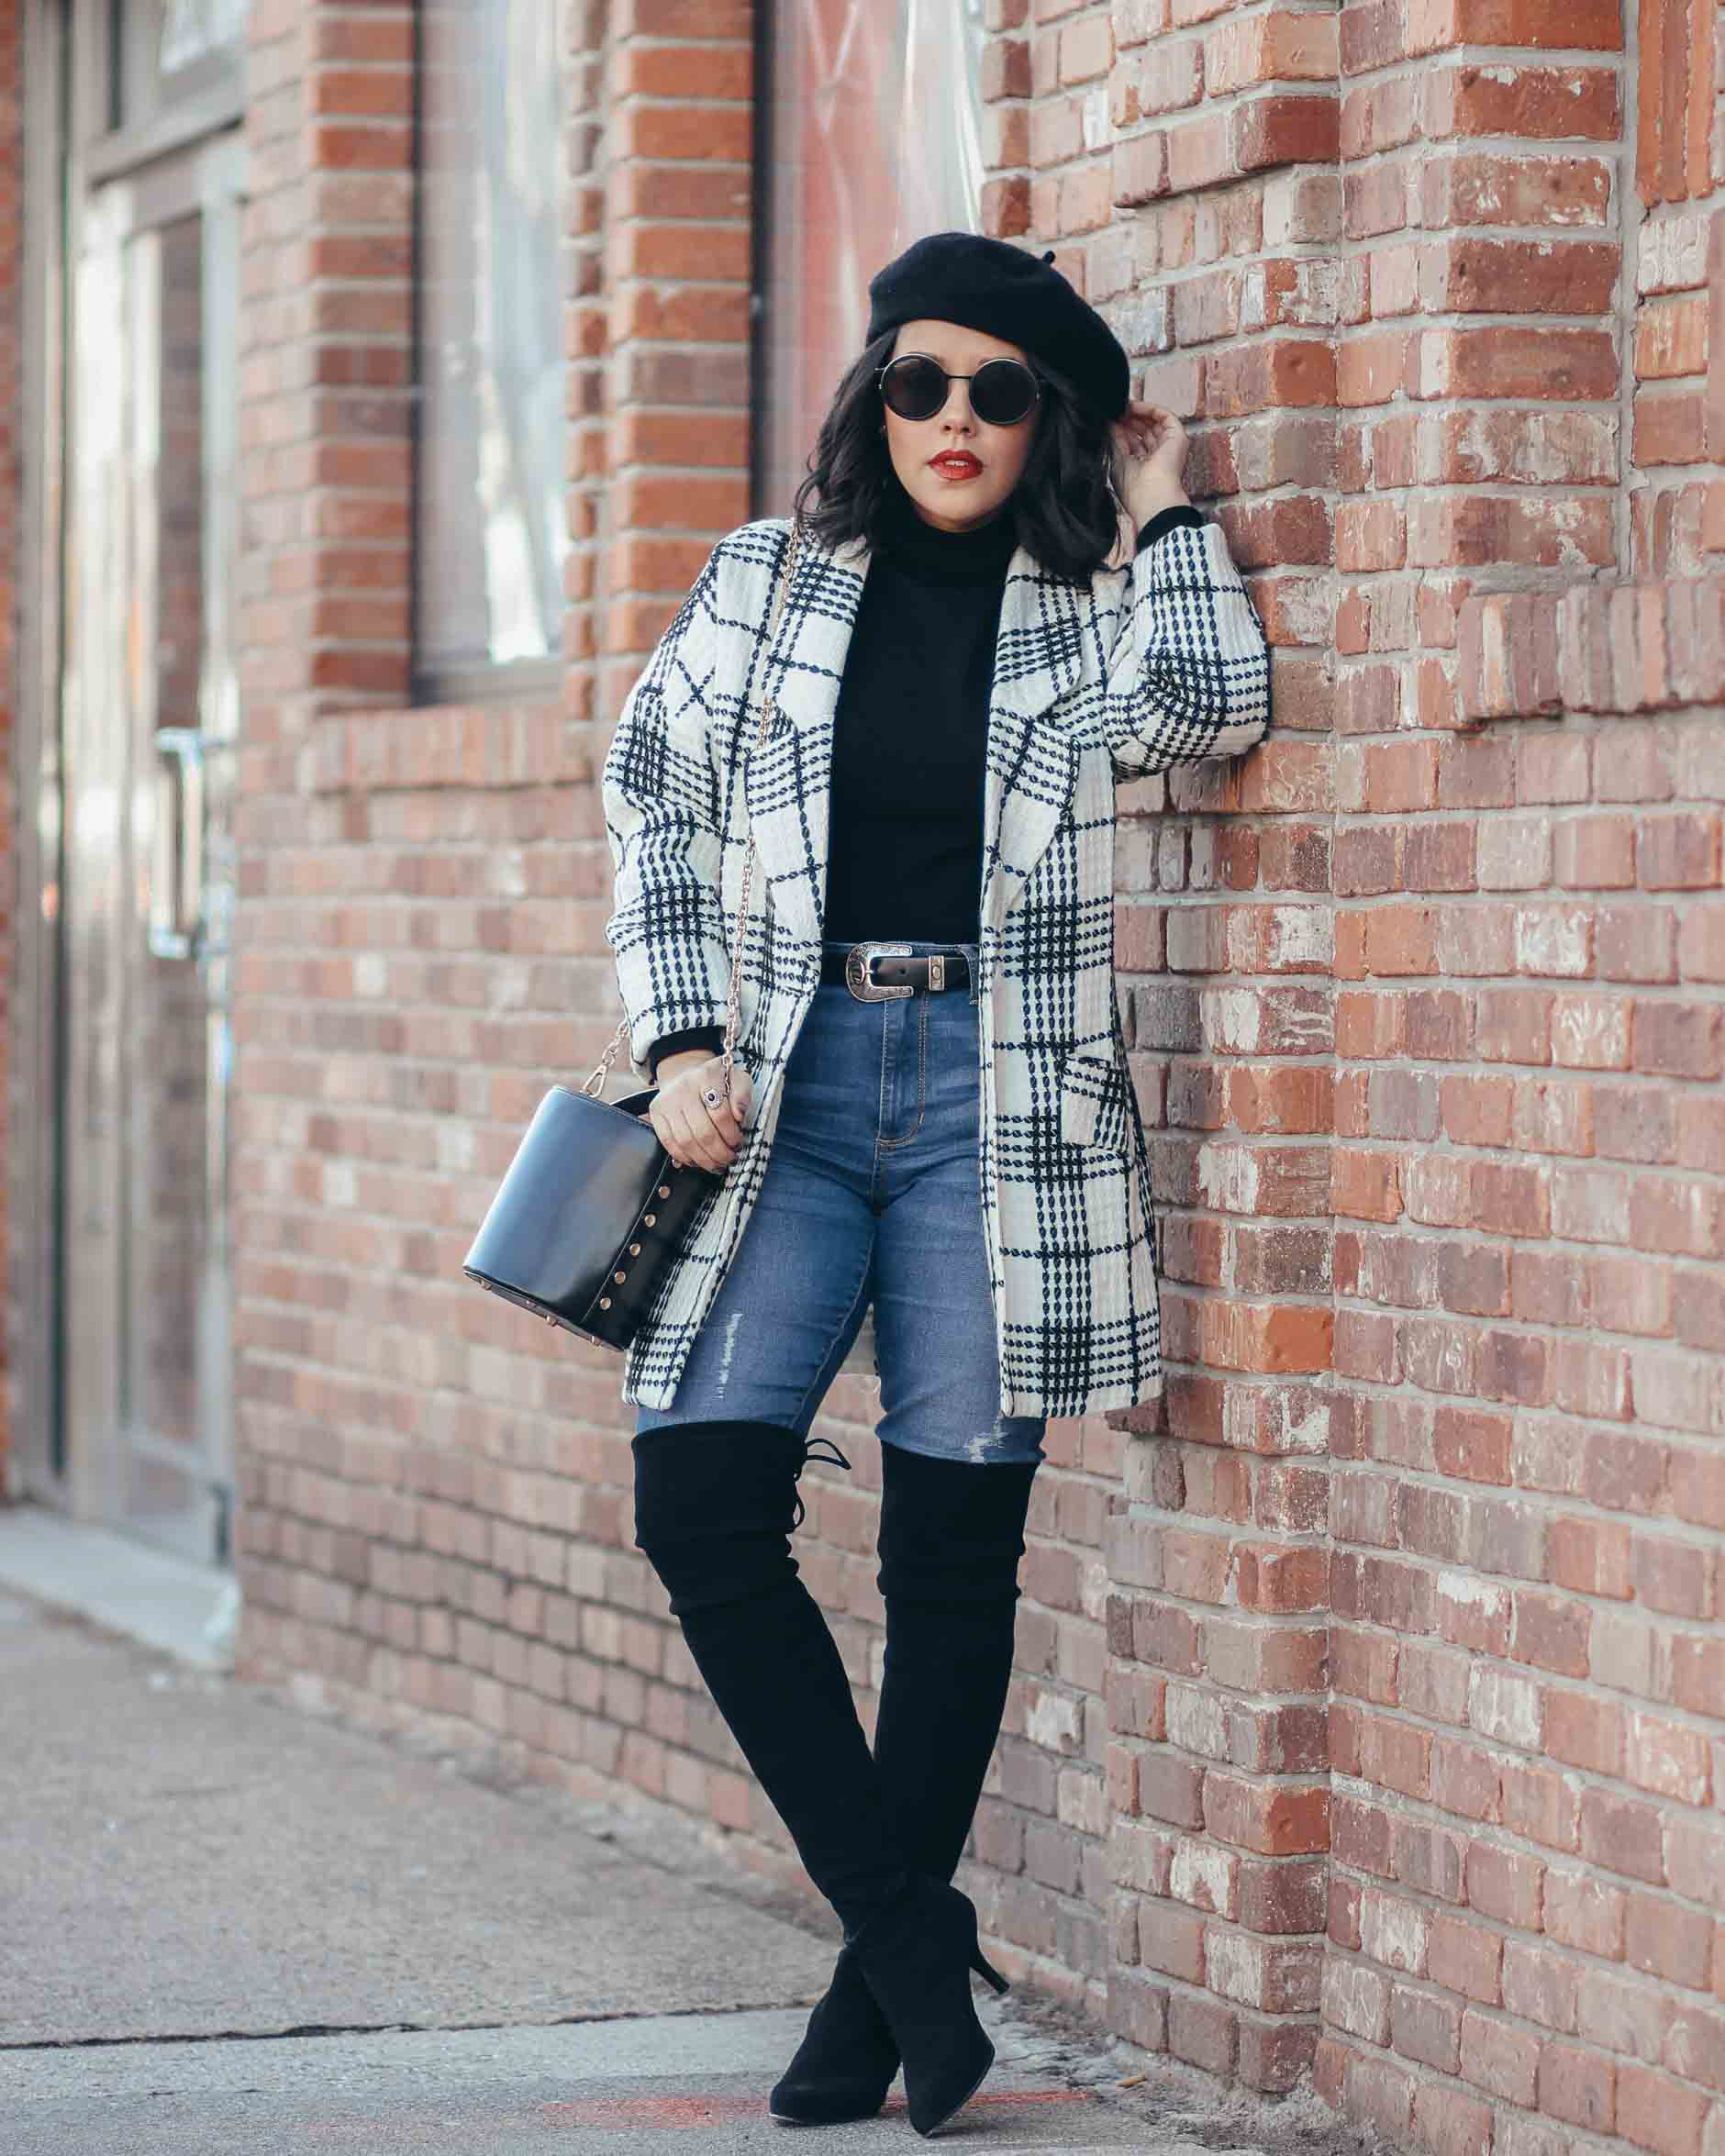 lifestyle blogger naty michele wearing a black and white coat with otk boots and denim